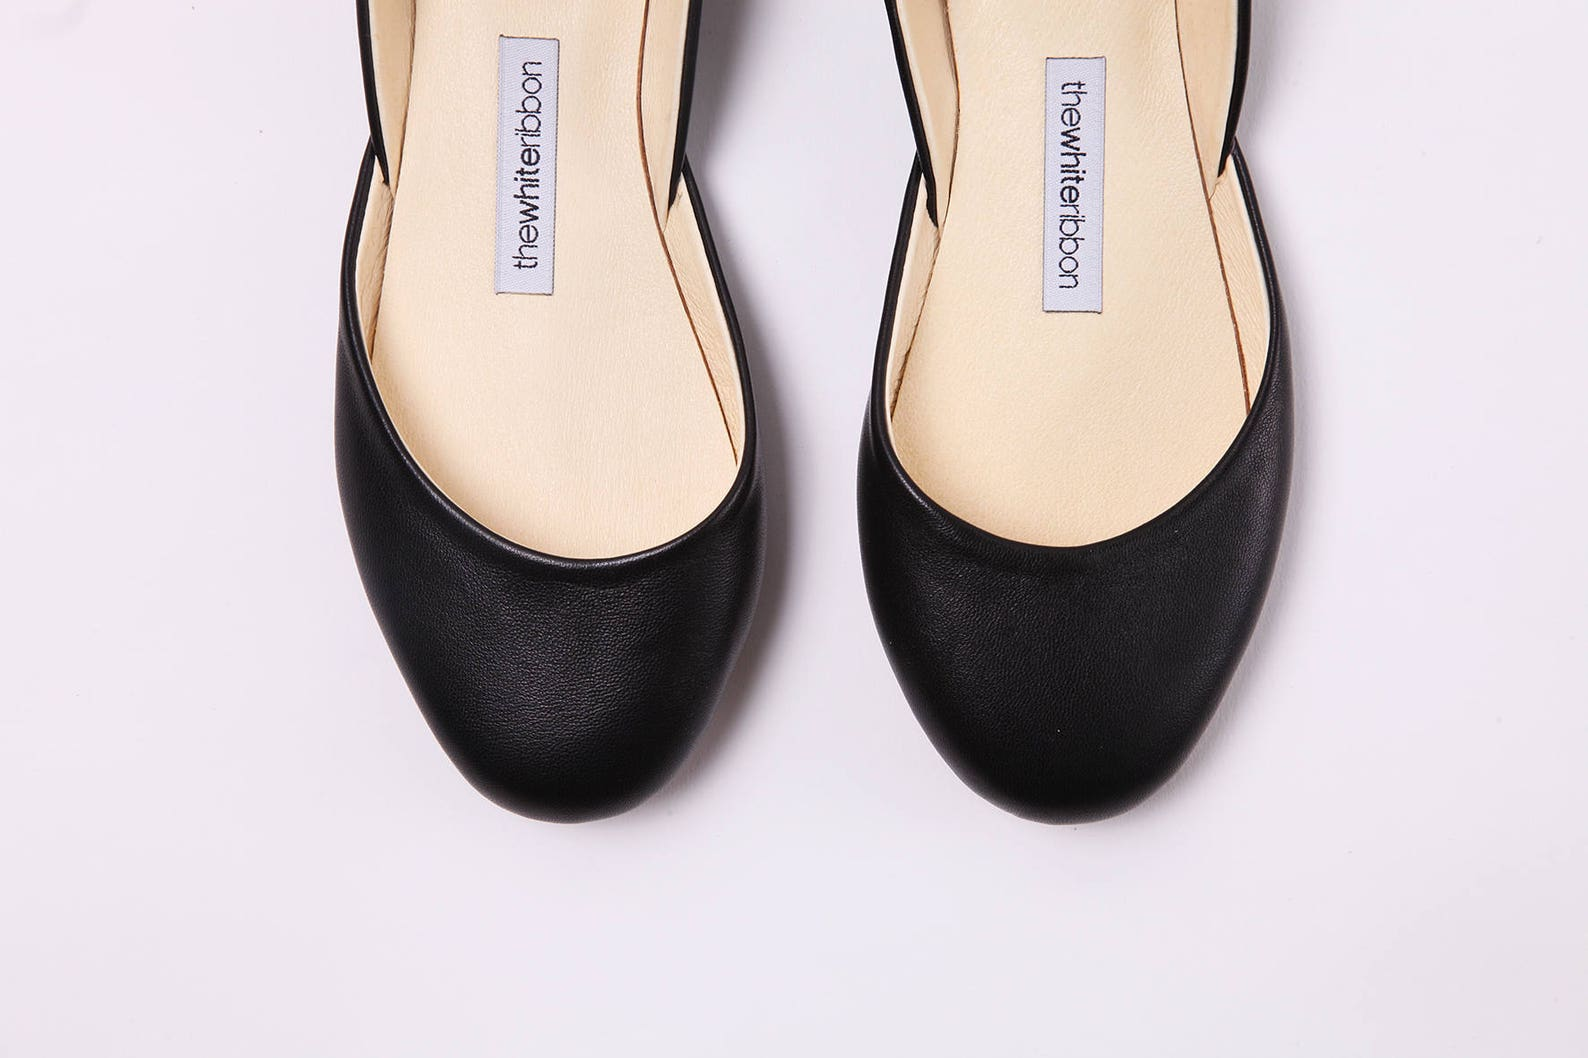 mary jane ballet flats in black leather | pointe style shoes | classic model | standard width | black mary janes | ready to ship